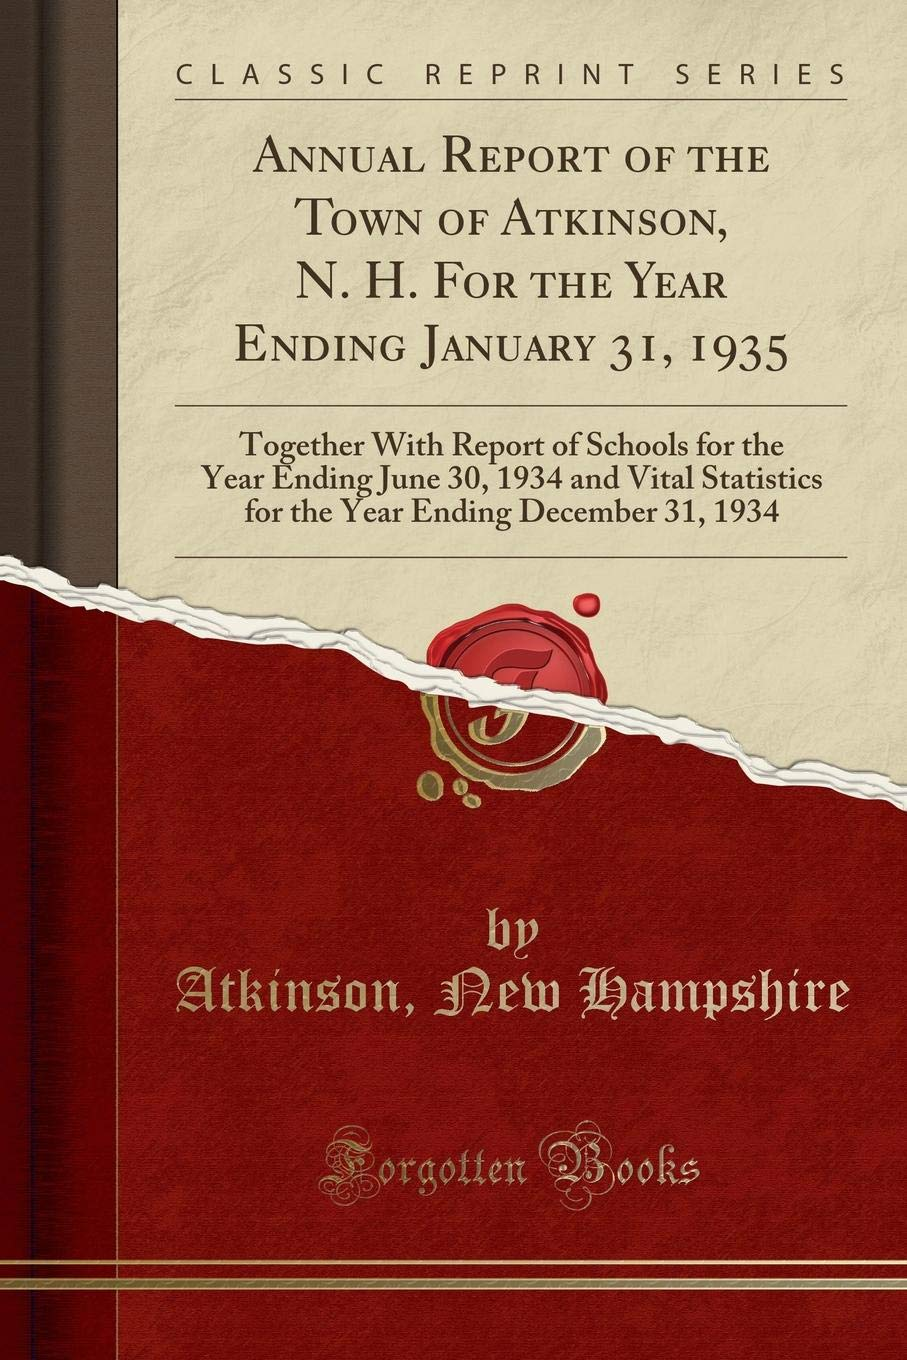 Annual Report of the Town of Atkinson, N. H. For the Year Ending January 31, 1935: Together With Report of Schools for the Year Ending June 30, 1934 ... Ending December 31, 1934 (Classic Reprint) pdf epub